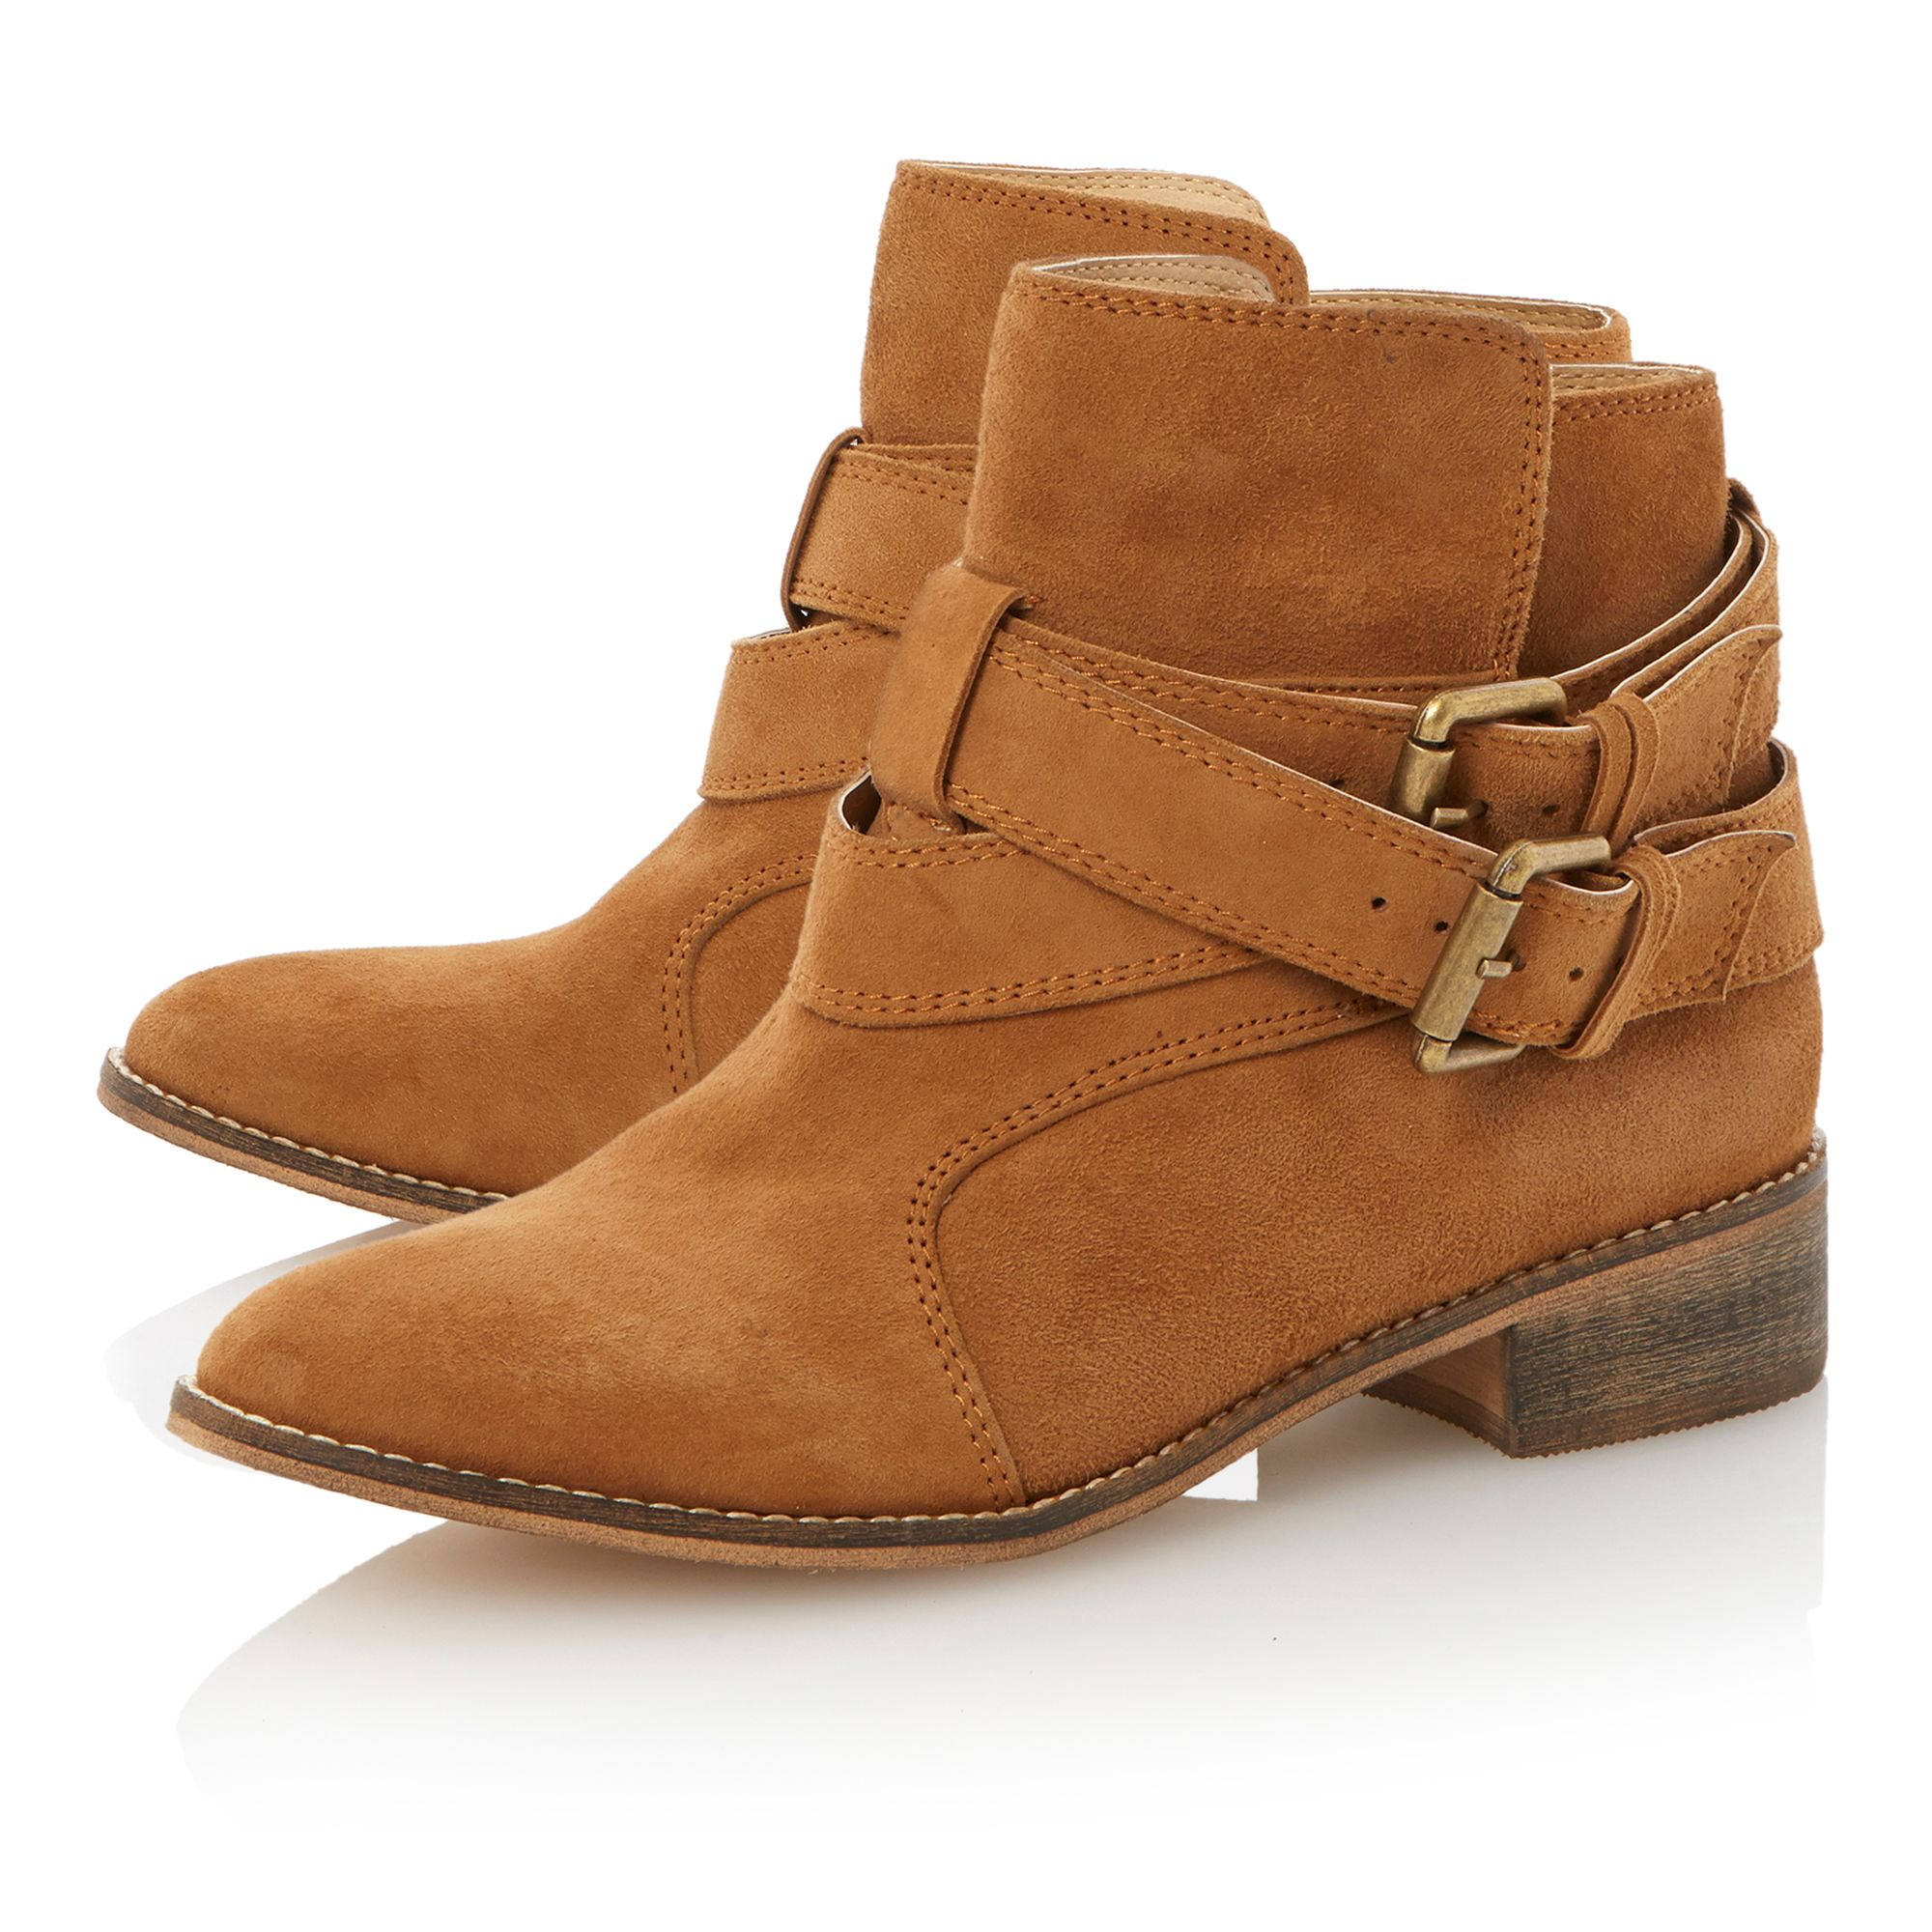 Pallermo double buckle ankle boots